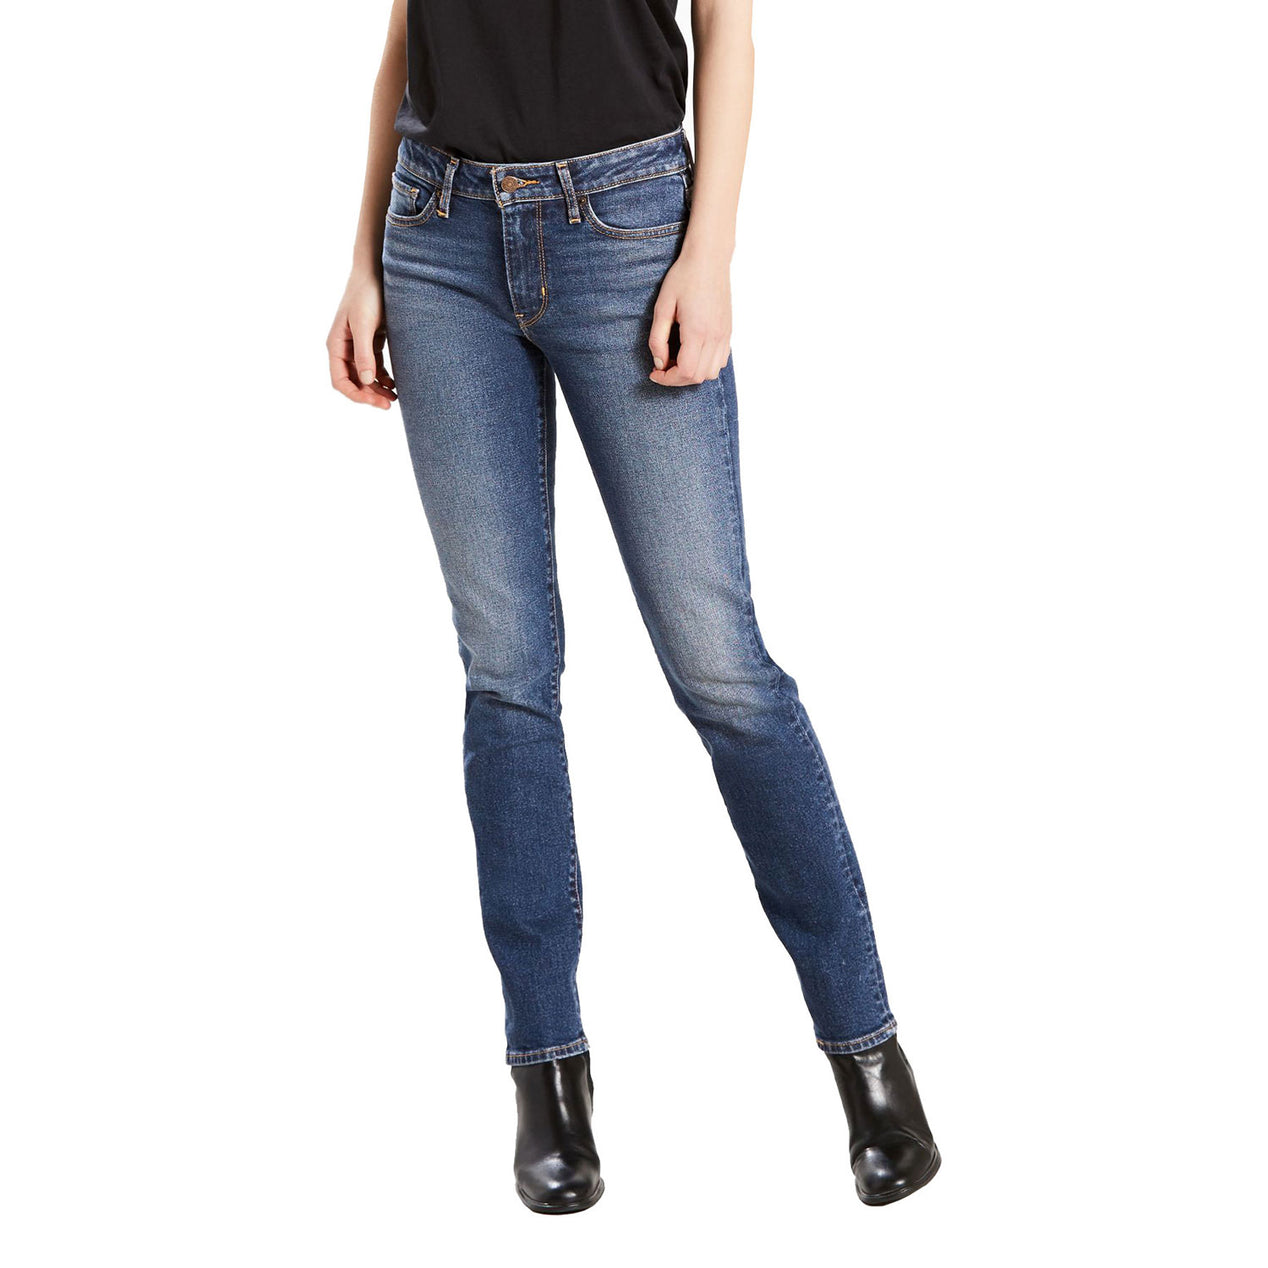 9c046416539 Levi s Women s 712 Slim Jeans - All Mixed Up